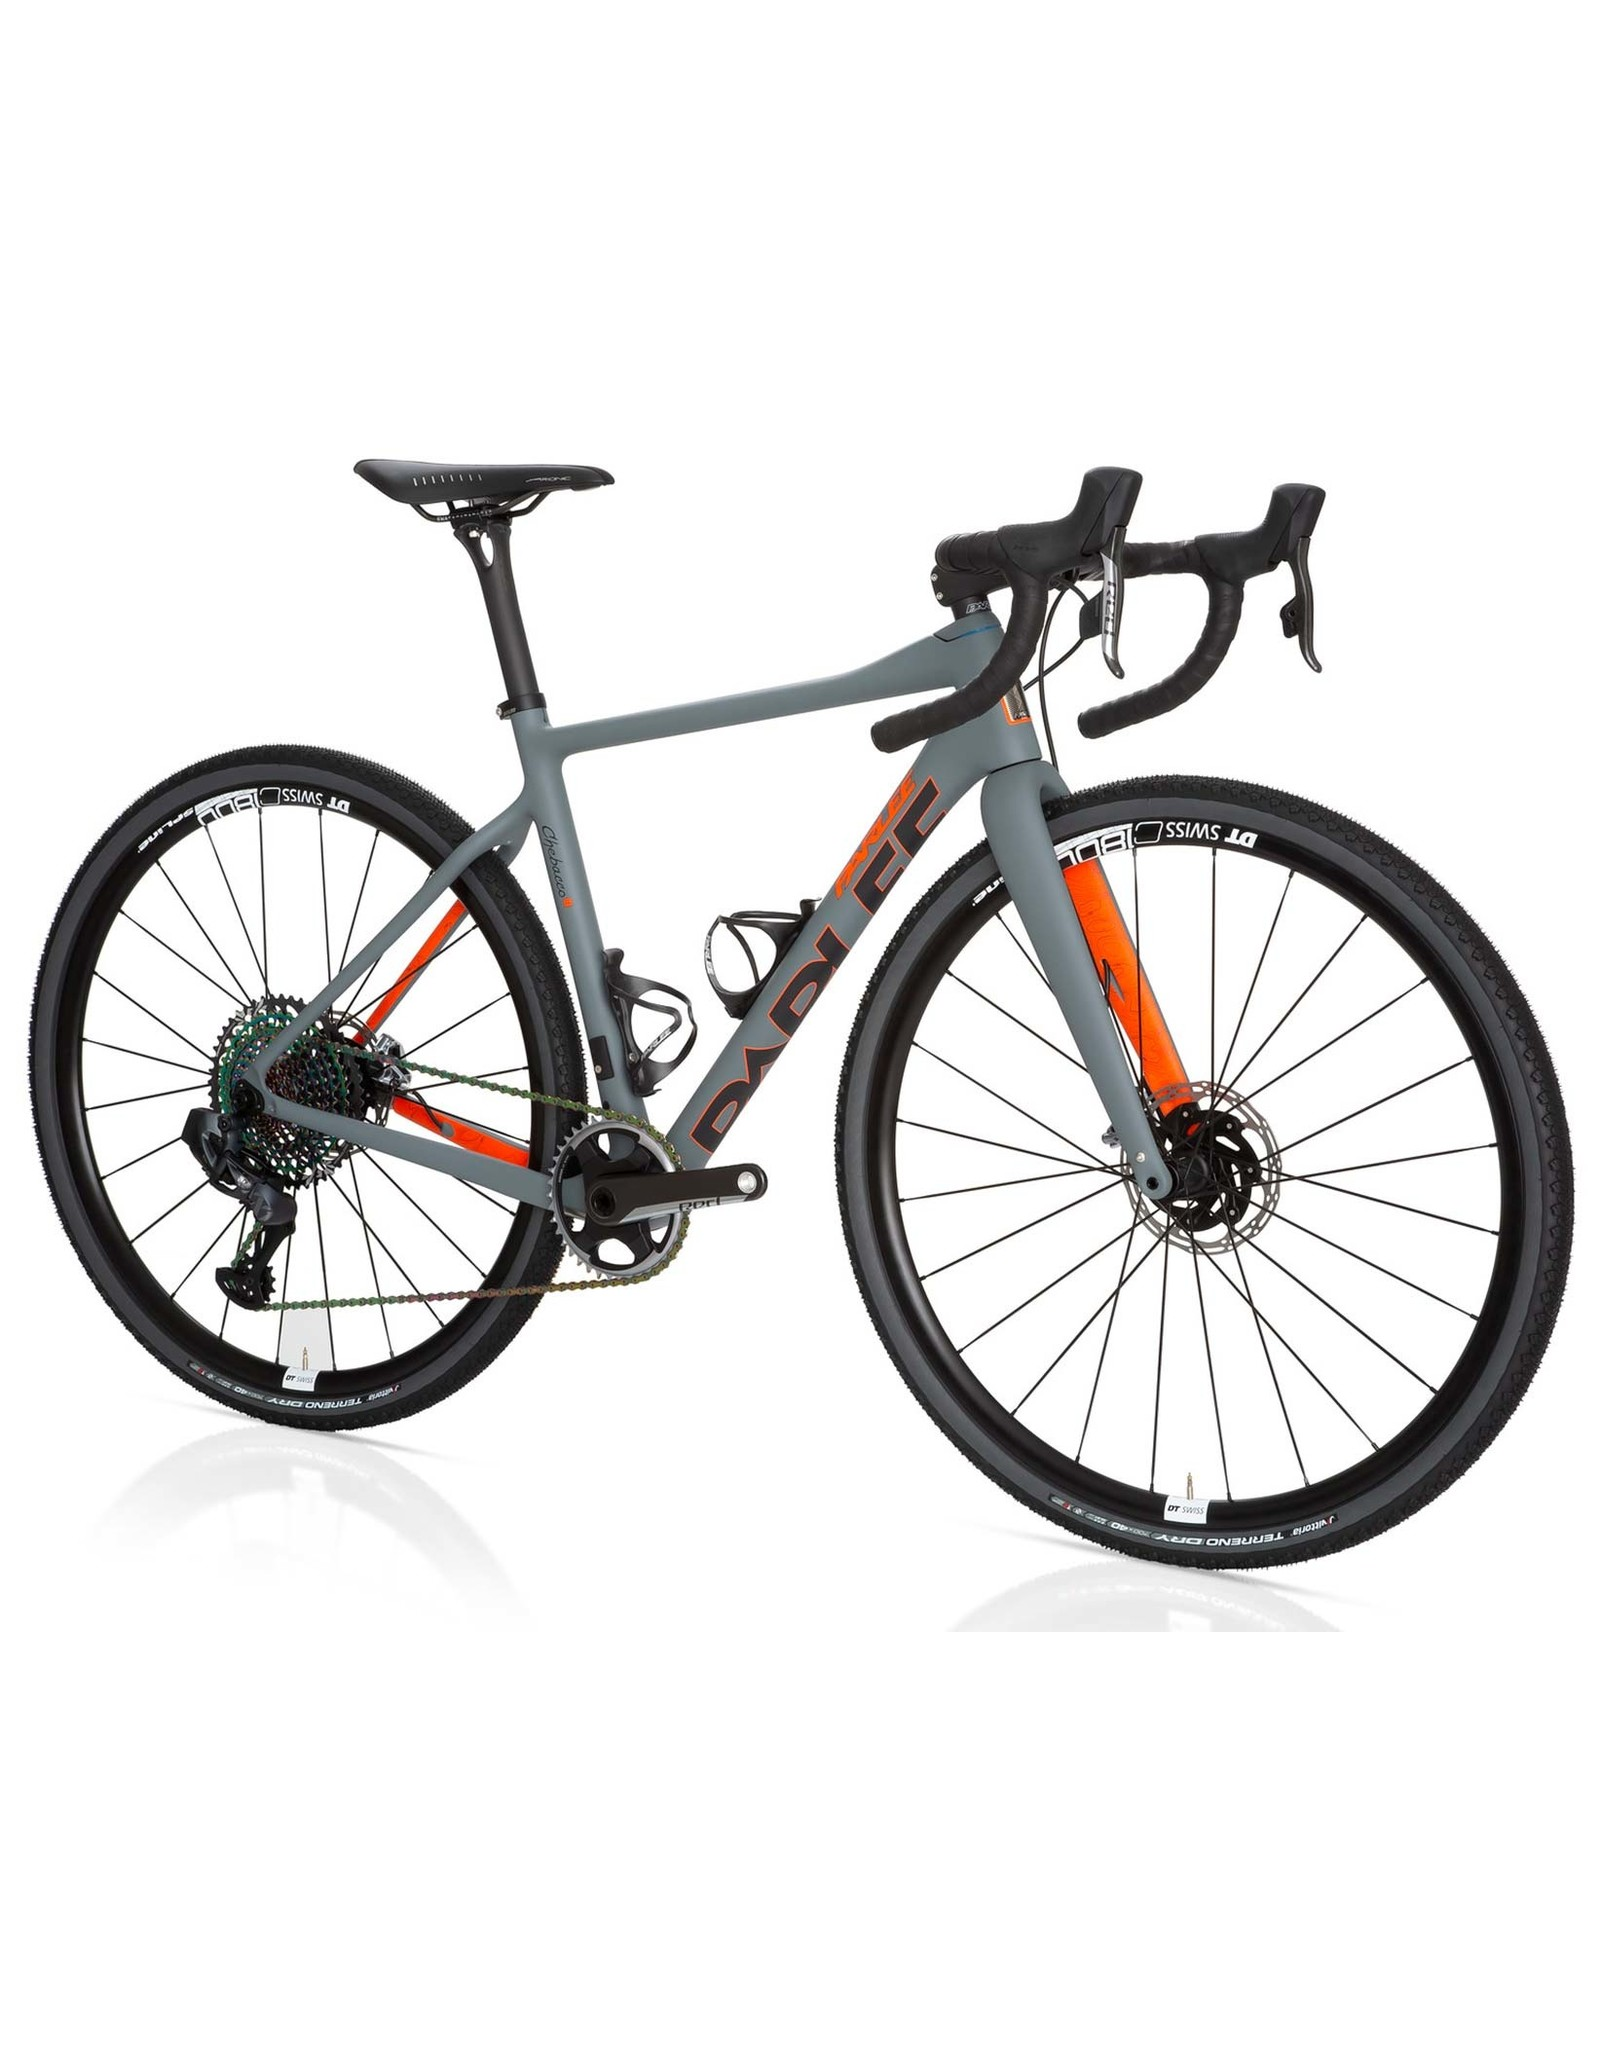 Parlee Parlee Checbacco LE Frameset (headset, handlebar, stem, & seatpost included)